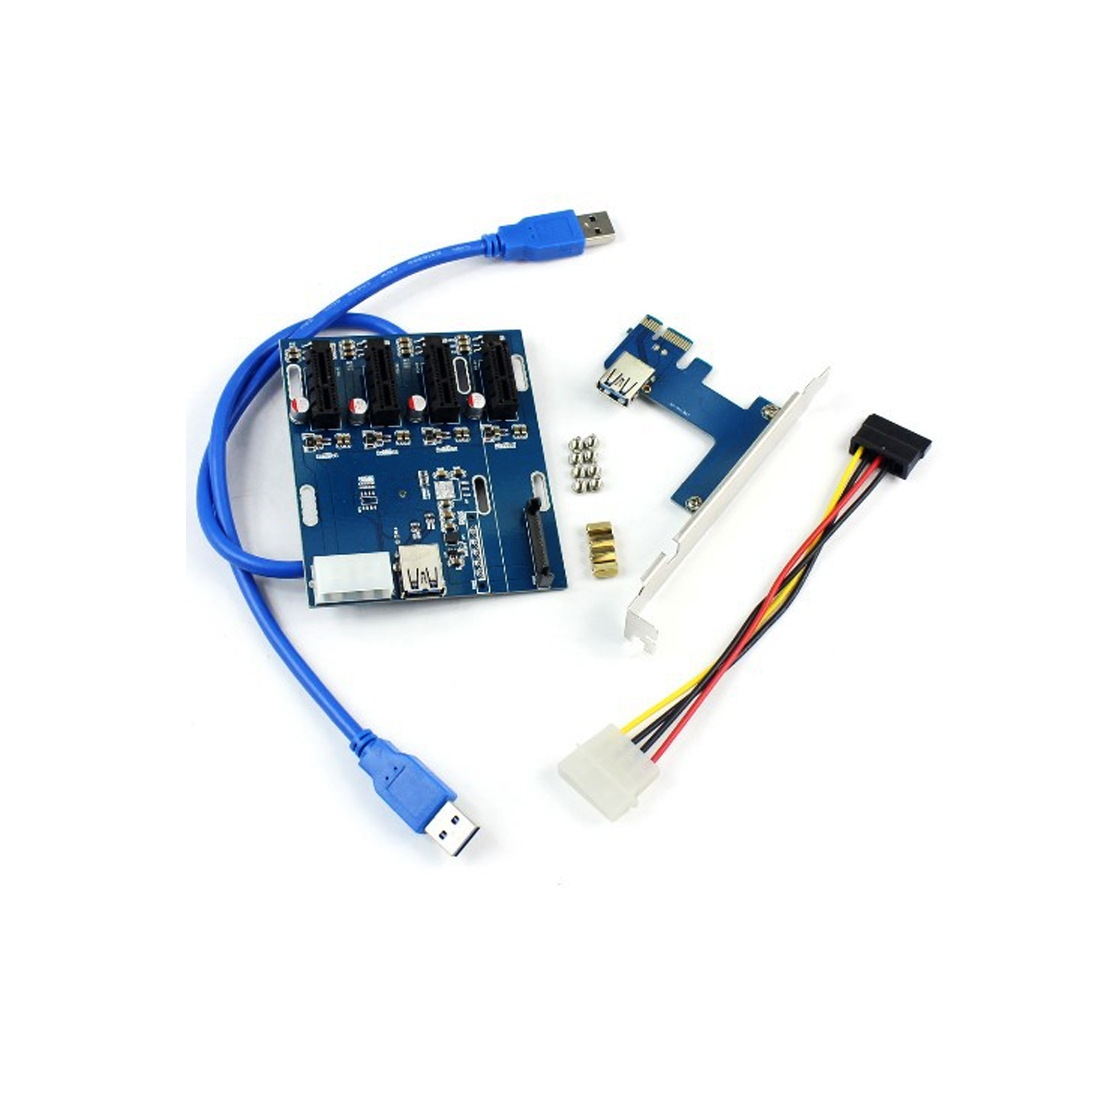 NEW Add On Cards PCIe 1 to 4 PCI express 1X slots Riser Card Mini ITX to external 4 PCI-e slot adapter PCIe Port Multiplier Card new card pcie 1 to 4pci express 16x slots riser card pci e 1x to external 4 pci e slot adapter pcie port multiplier card